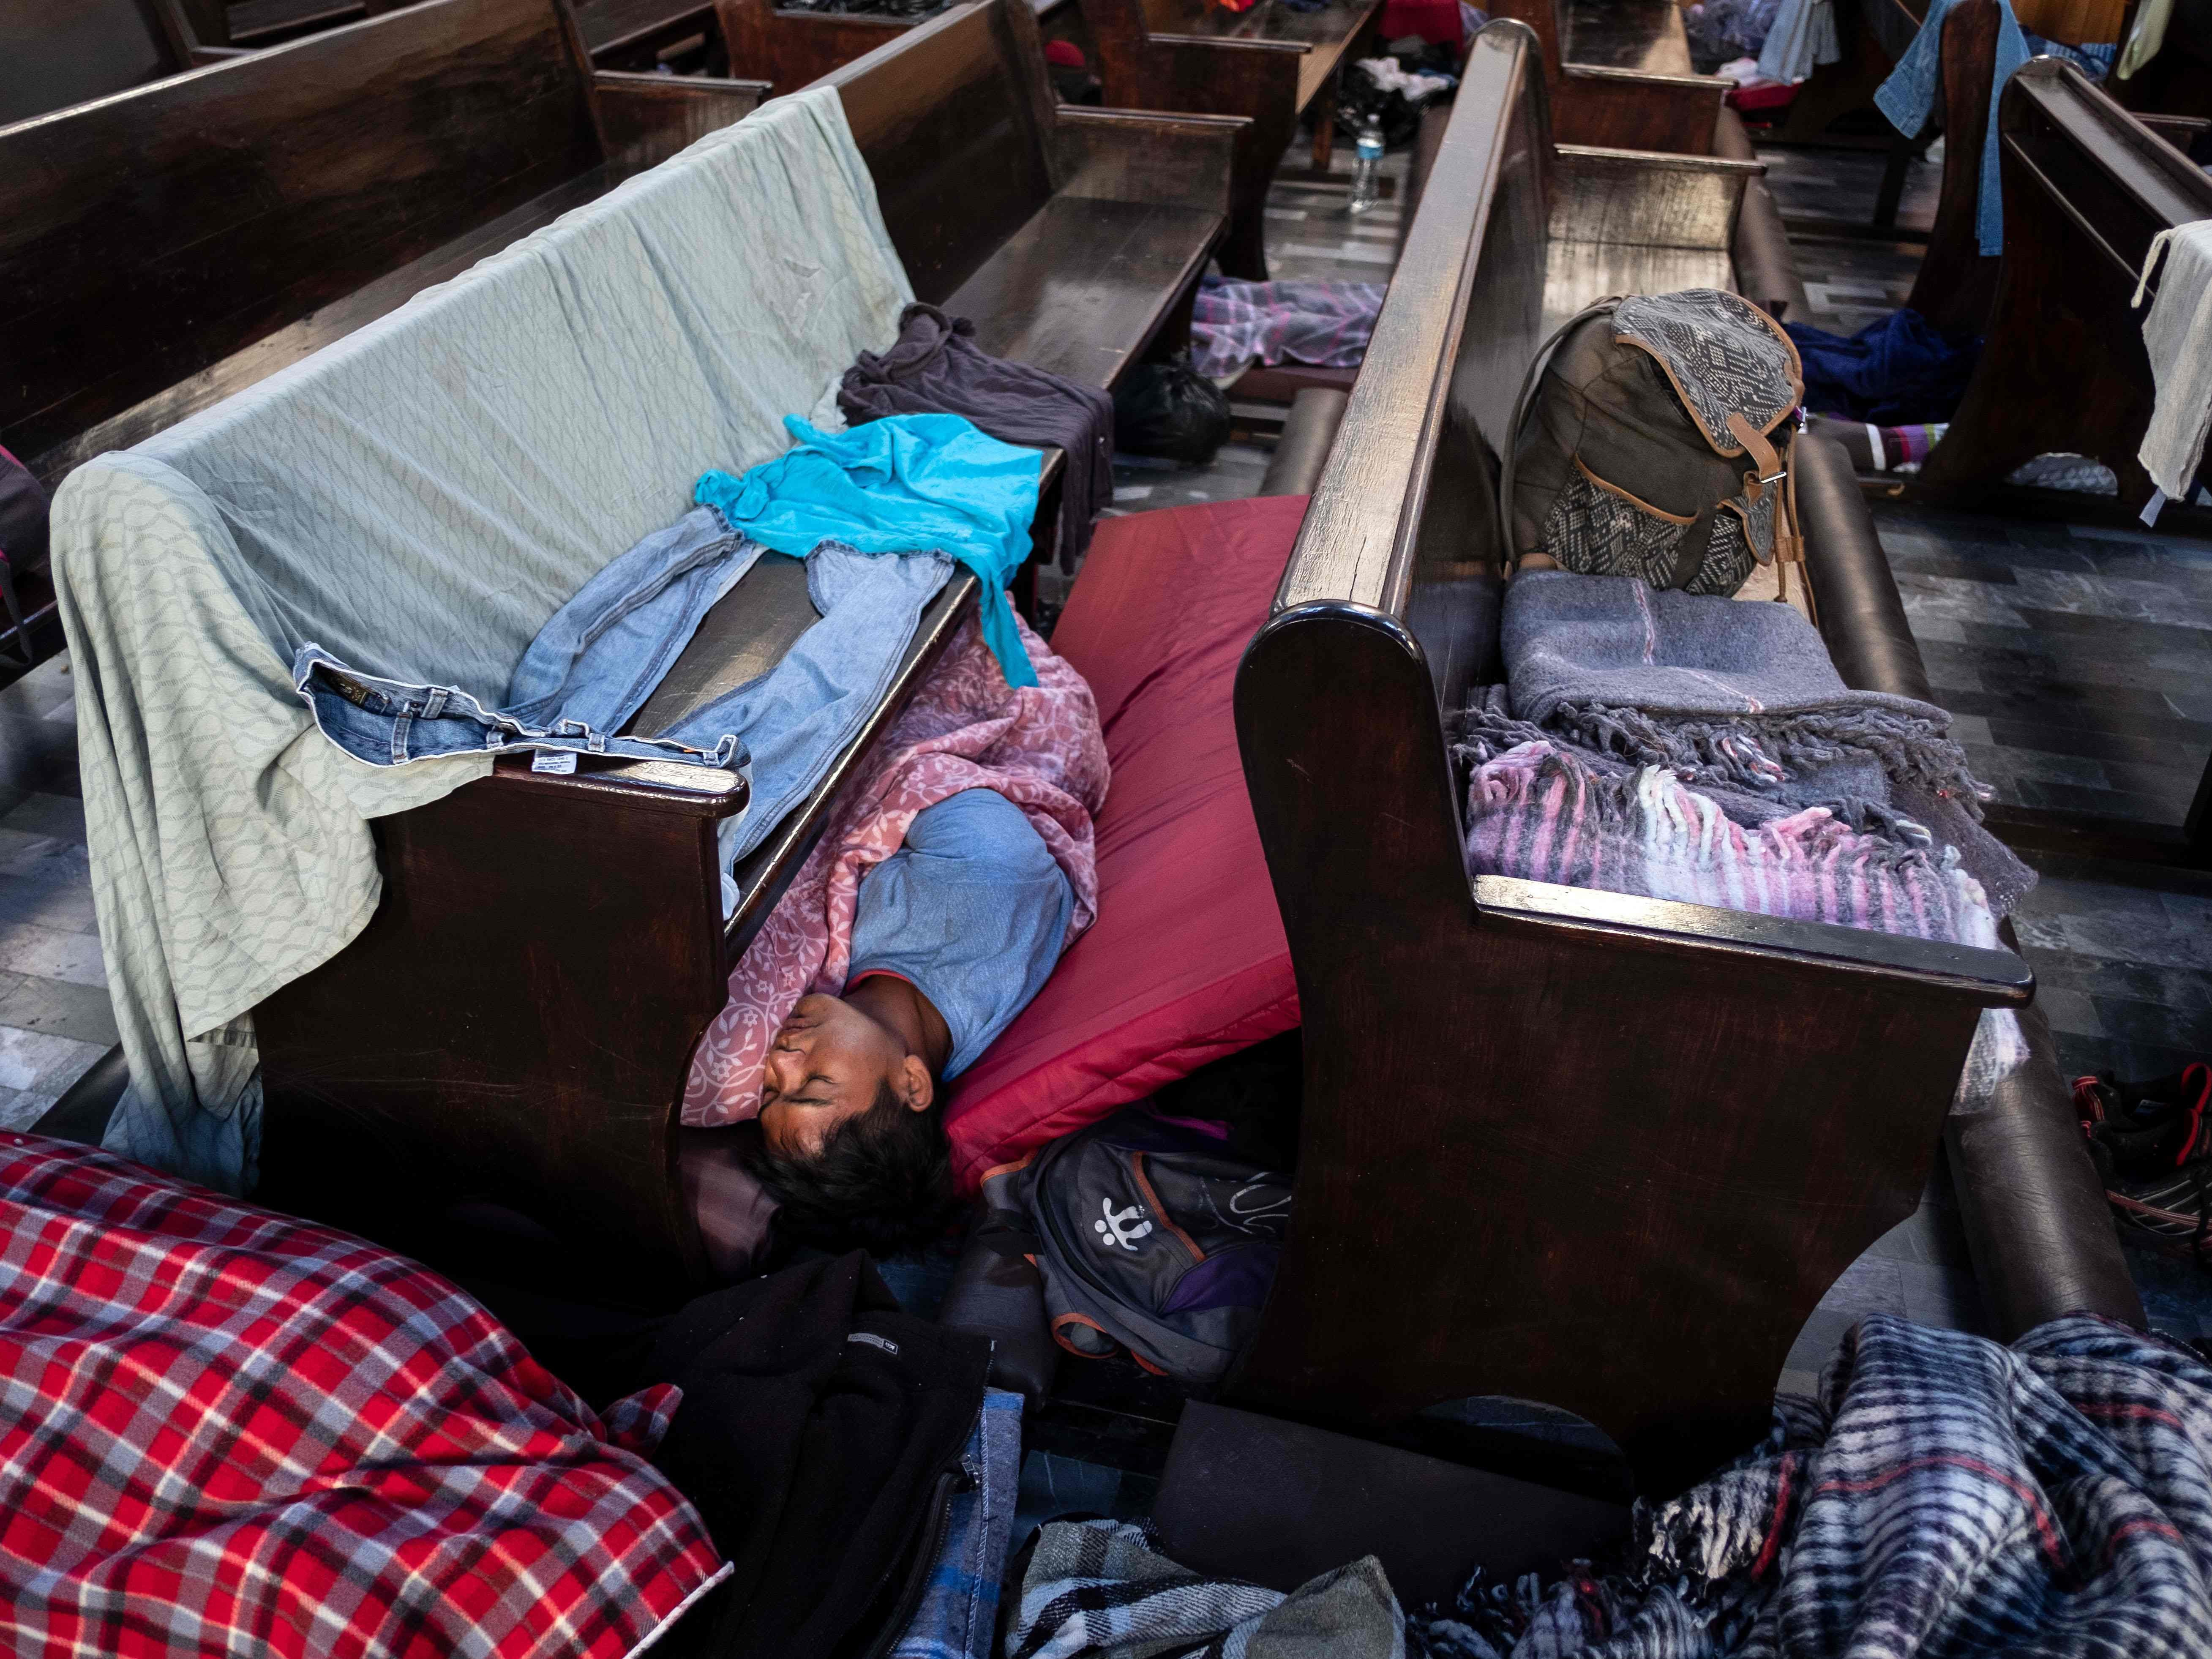 Migrants -mostly Hondurans- taking part in a caravan heading to the US, rest at the Asuncion temple -fitted out as a temporary shelter- in Puebla, Puebla state, Mexico, on Nov. 4, 2018.